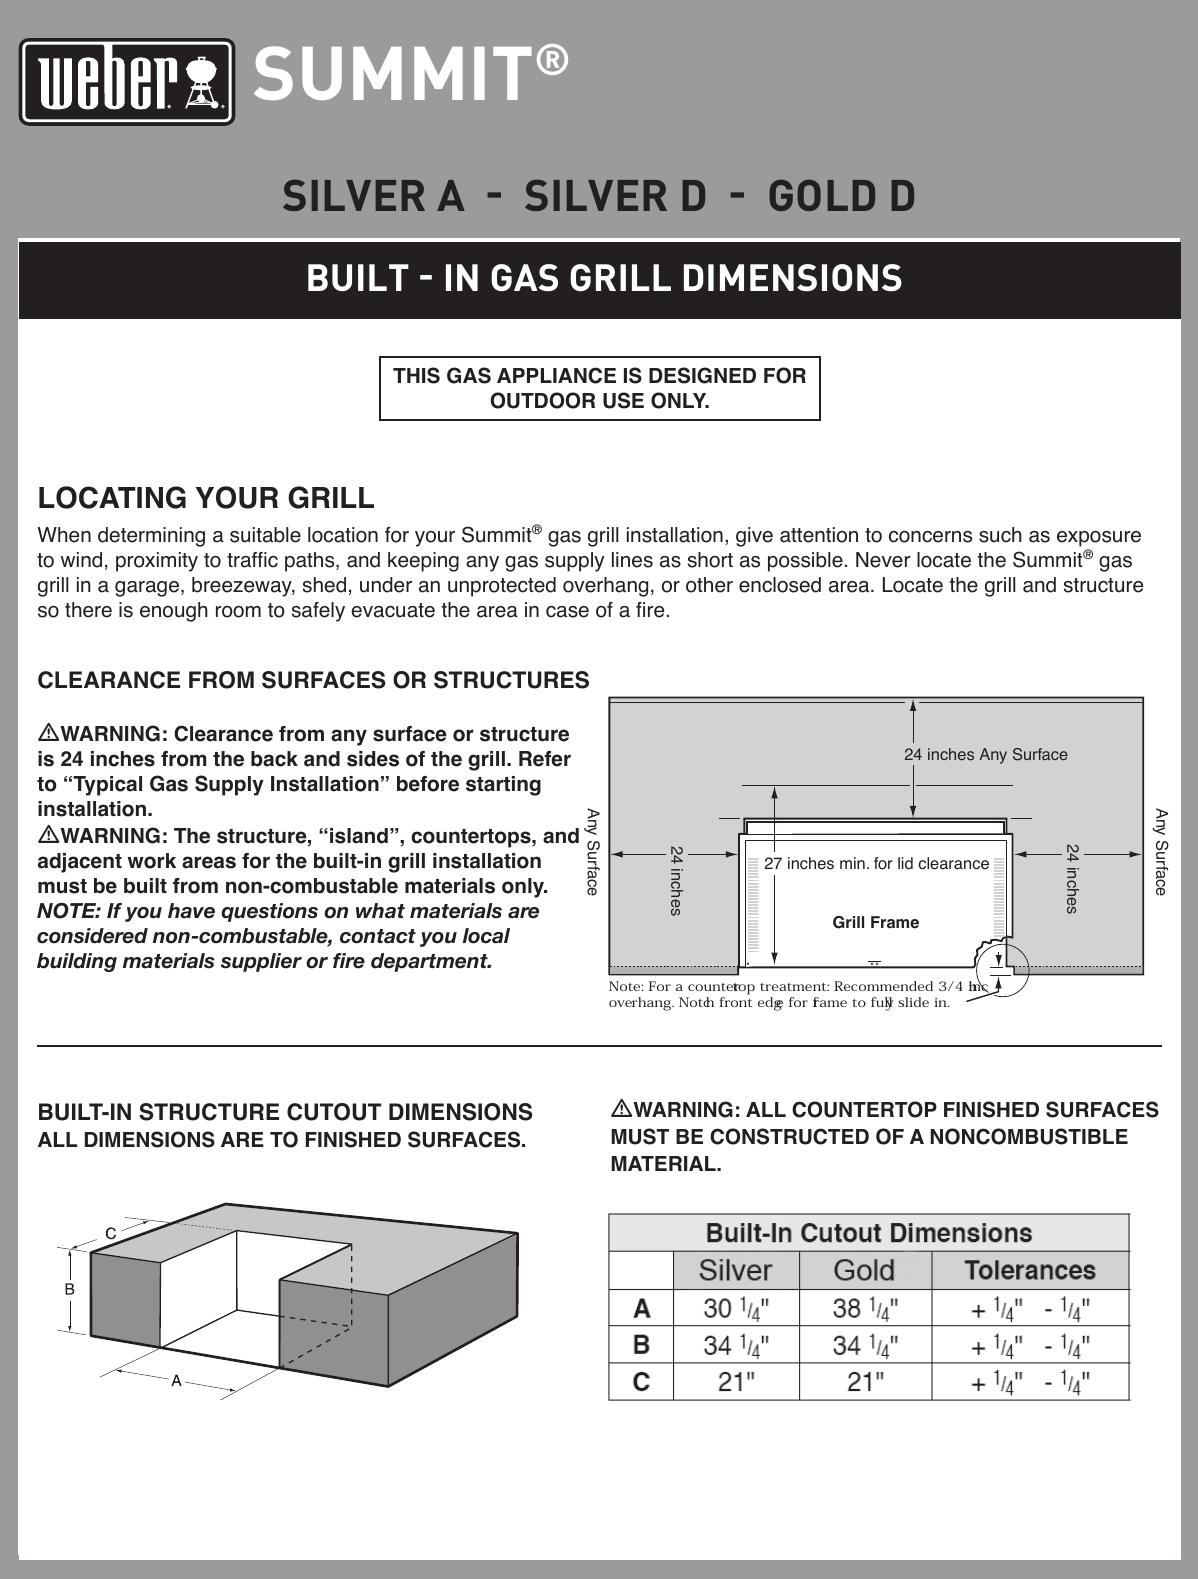 Weber Summit Gold D Users Manual Silver A Built In Dimensions 02 2004 Pdf File